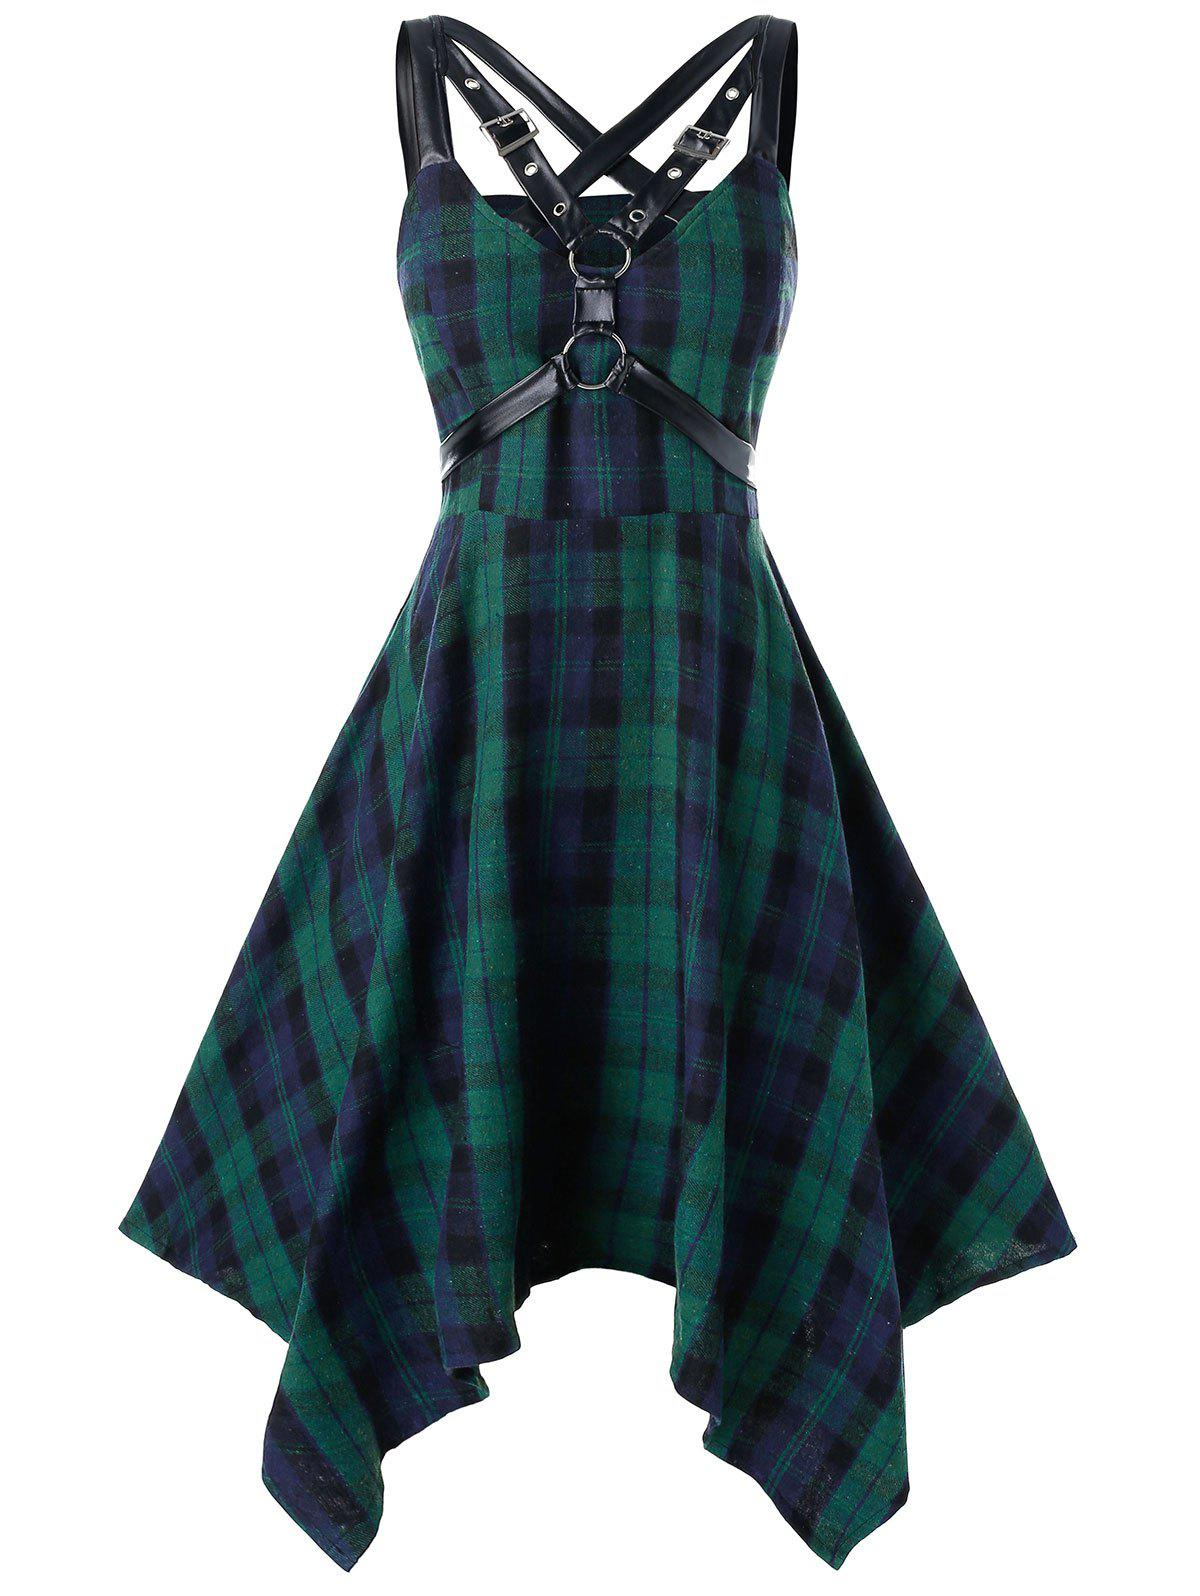 Plus Size Plaid Harness Gothic Hanky Hem Dress - DARK TURQUOISE 2X